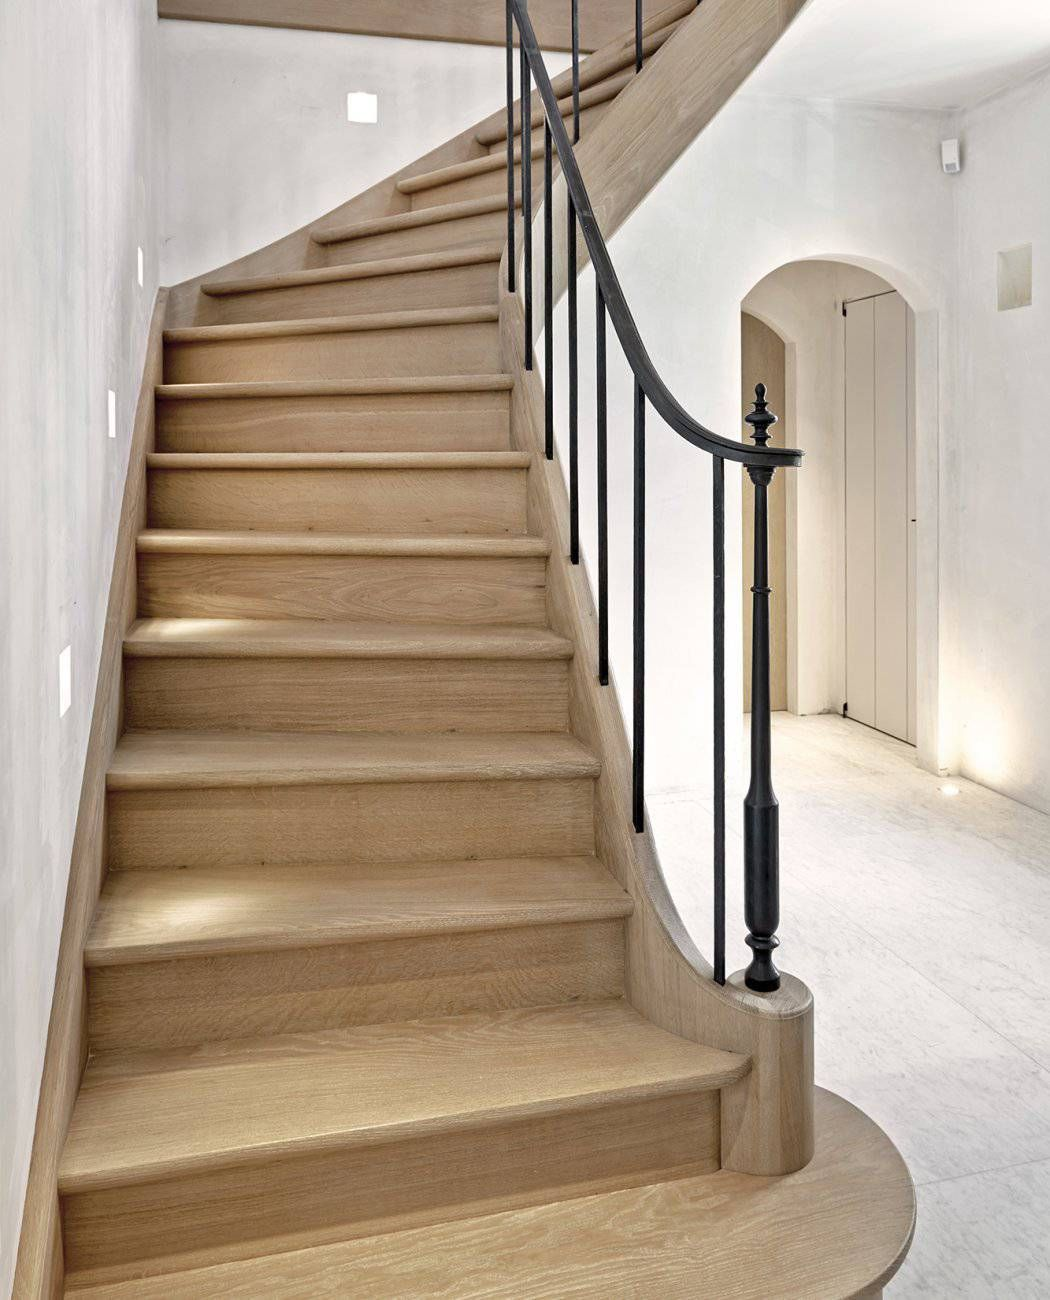 Pastorij trap google zoeken entree hal pinterest staircases hall and stair railing - Deco entree met trap ...